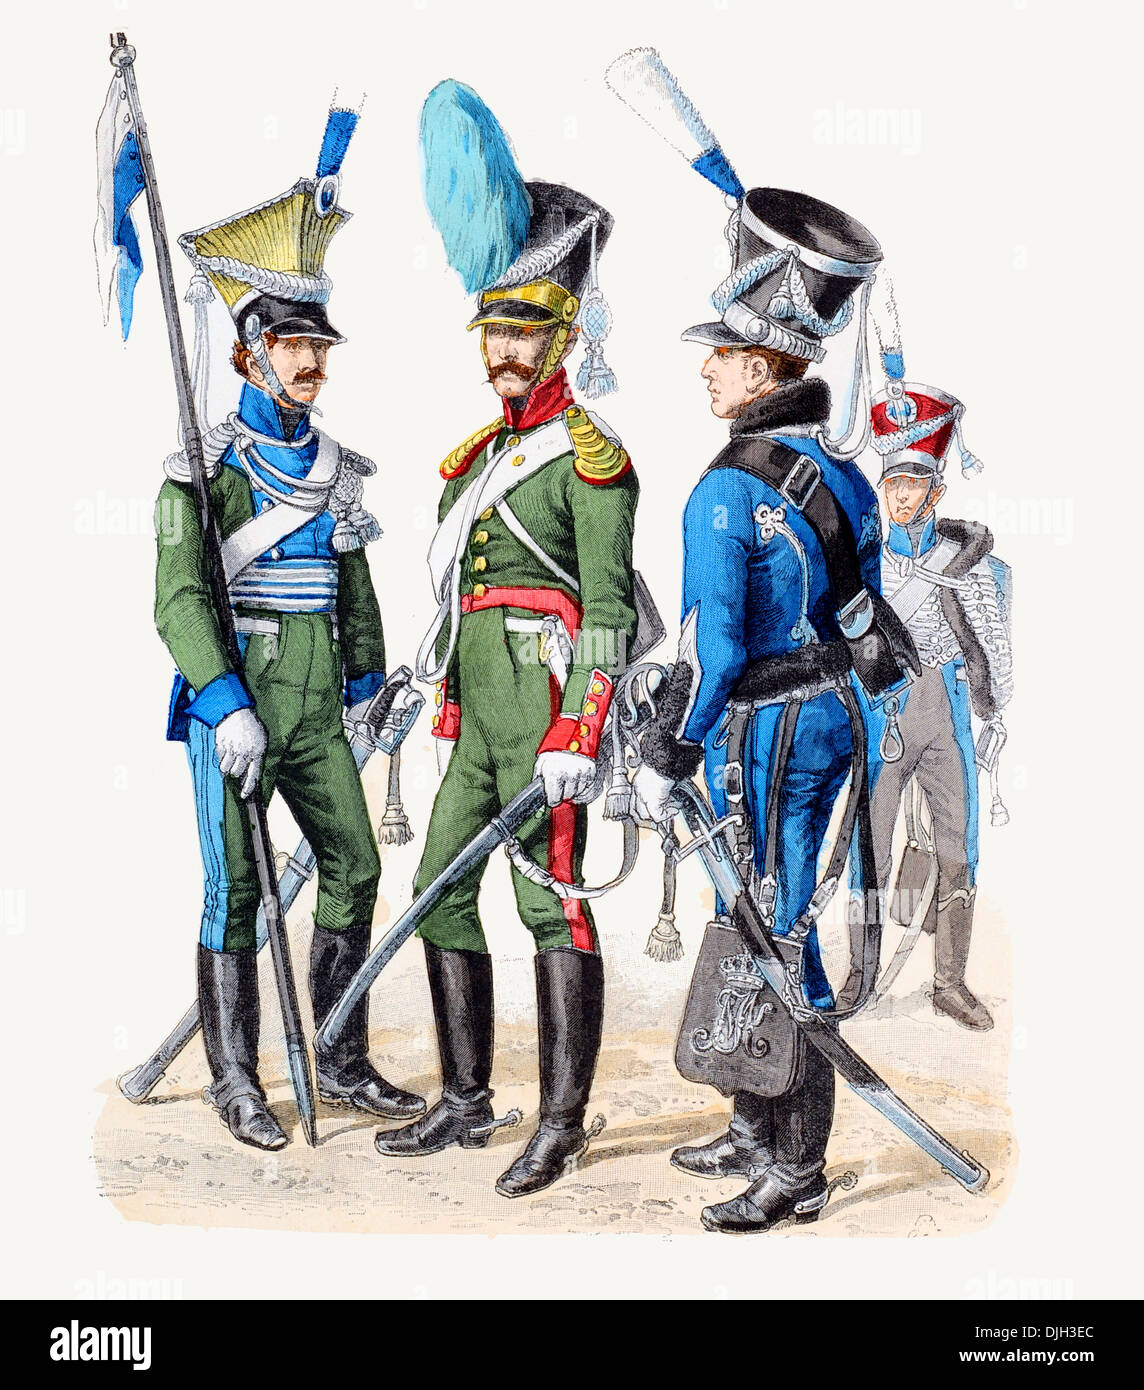 Early 19th century XIX  Bavarian military Left to right lancer, cavalryman, and hussar - Stock Image